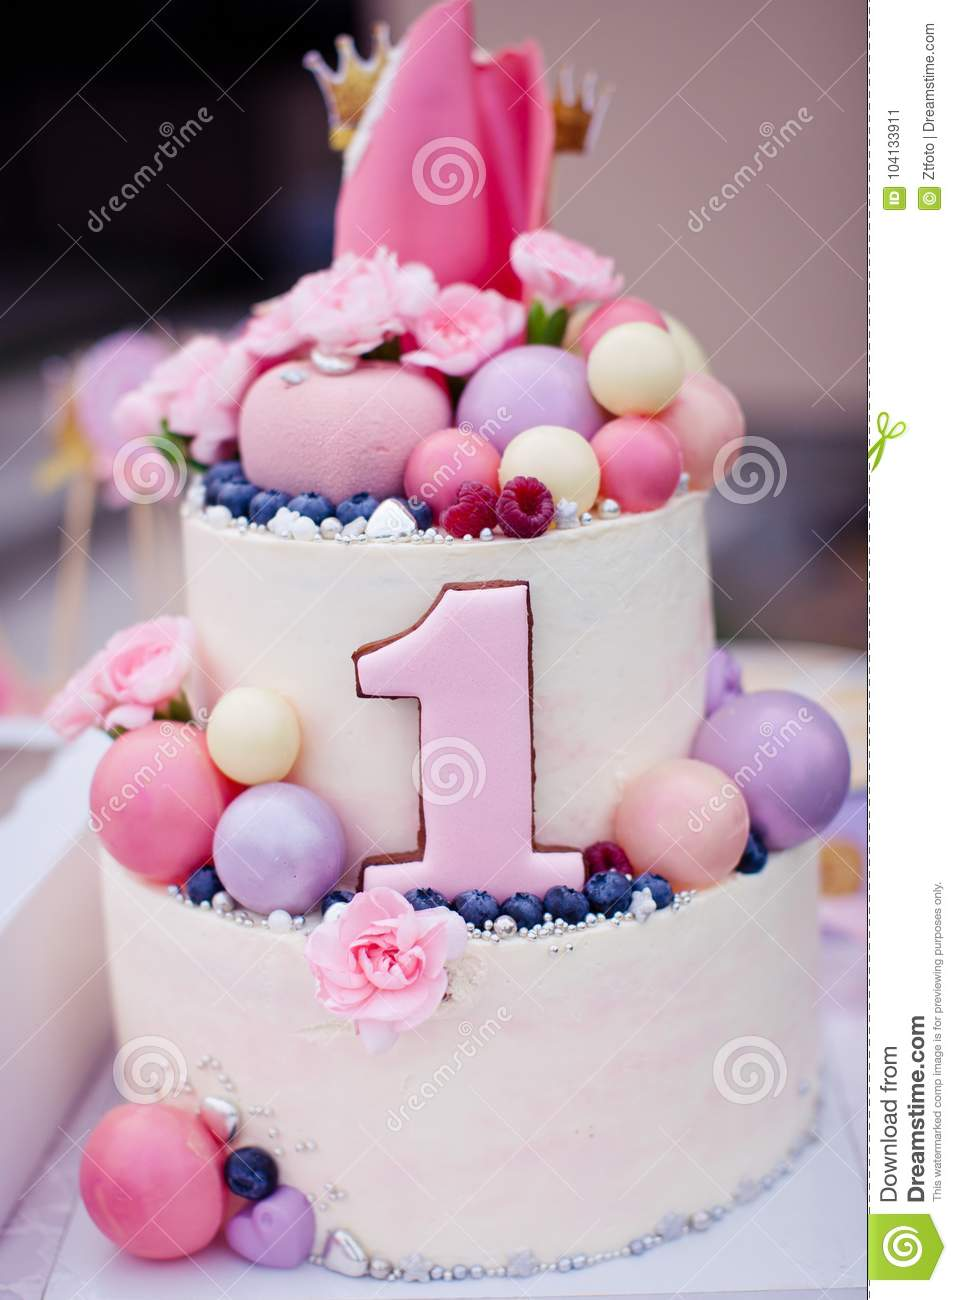 Superb Pink Cake For A Girl On The Birthday Of One Year Old Stock Image Funny Birthday Cards Online Inifofree Goldxyz